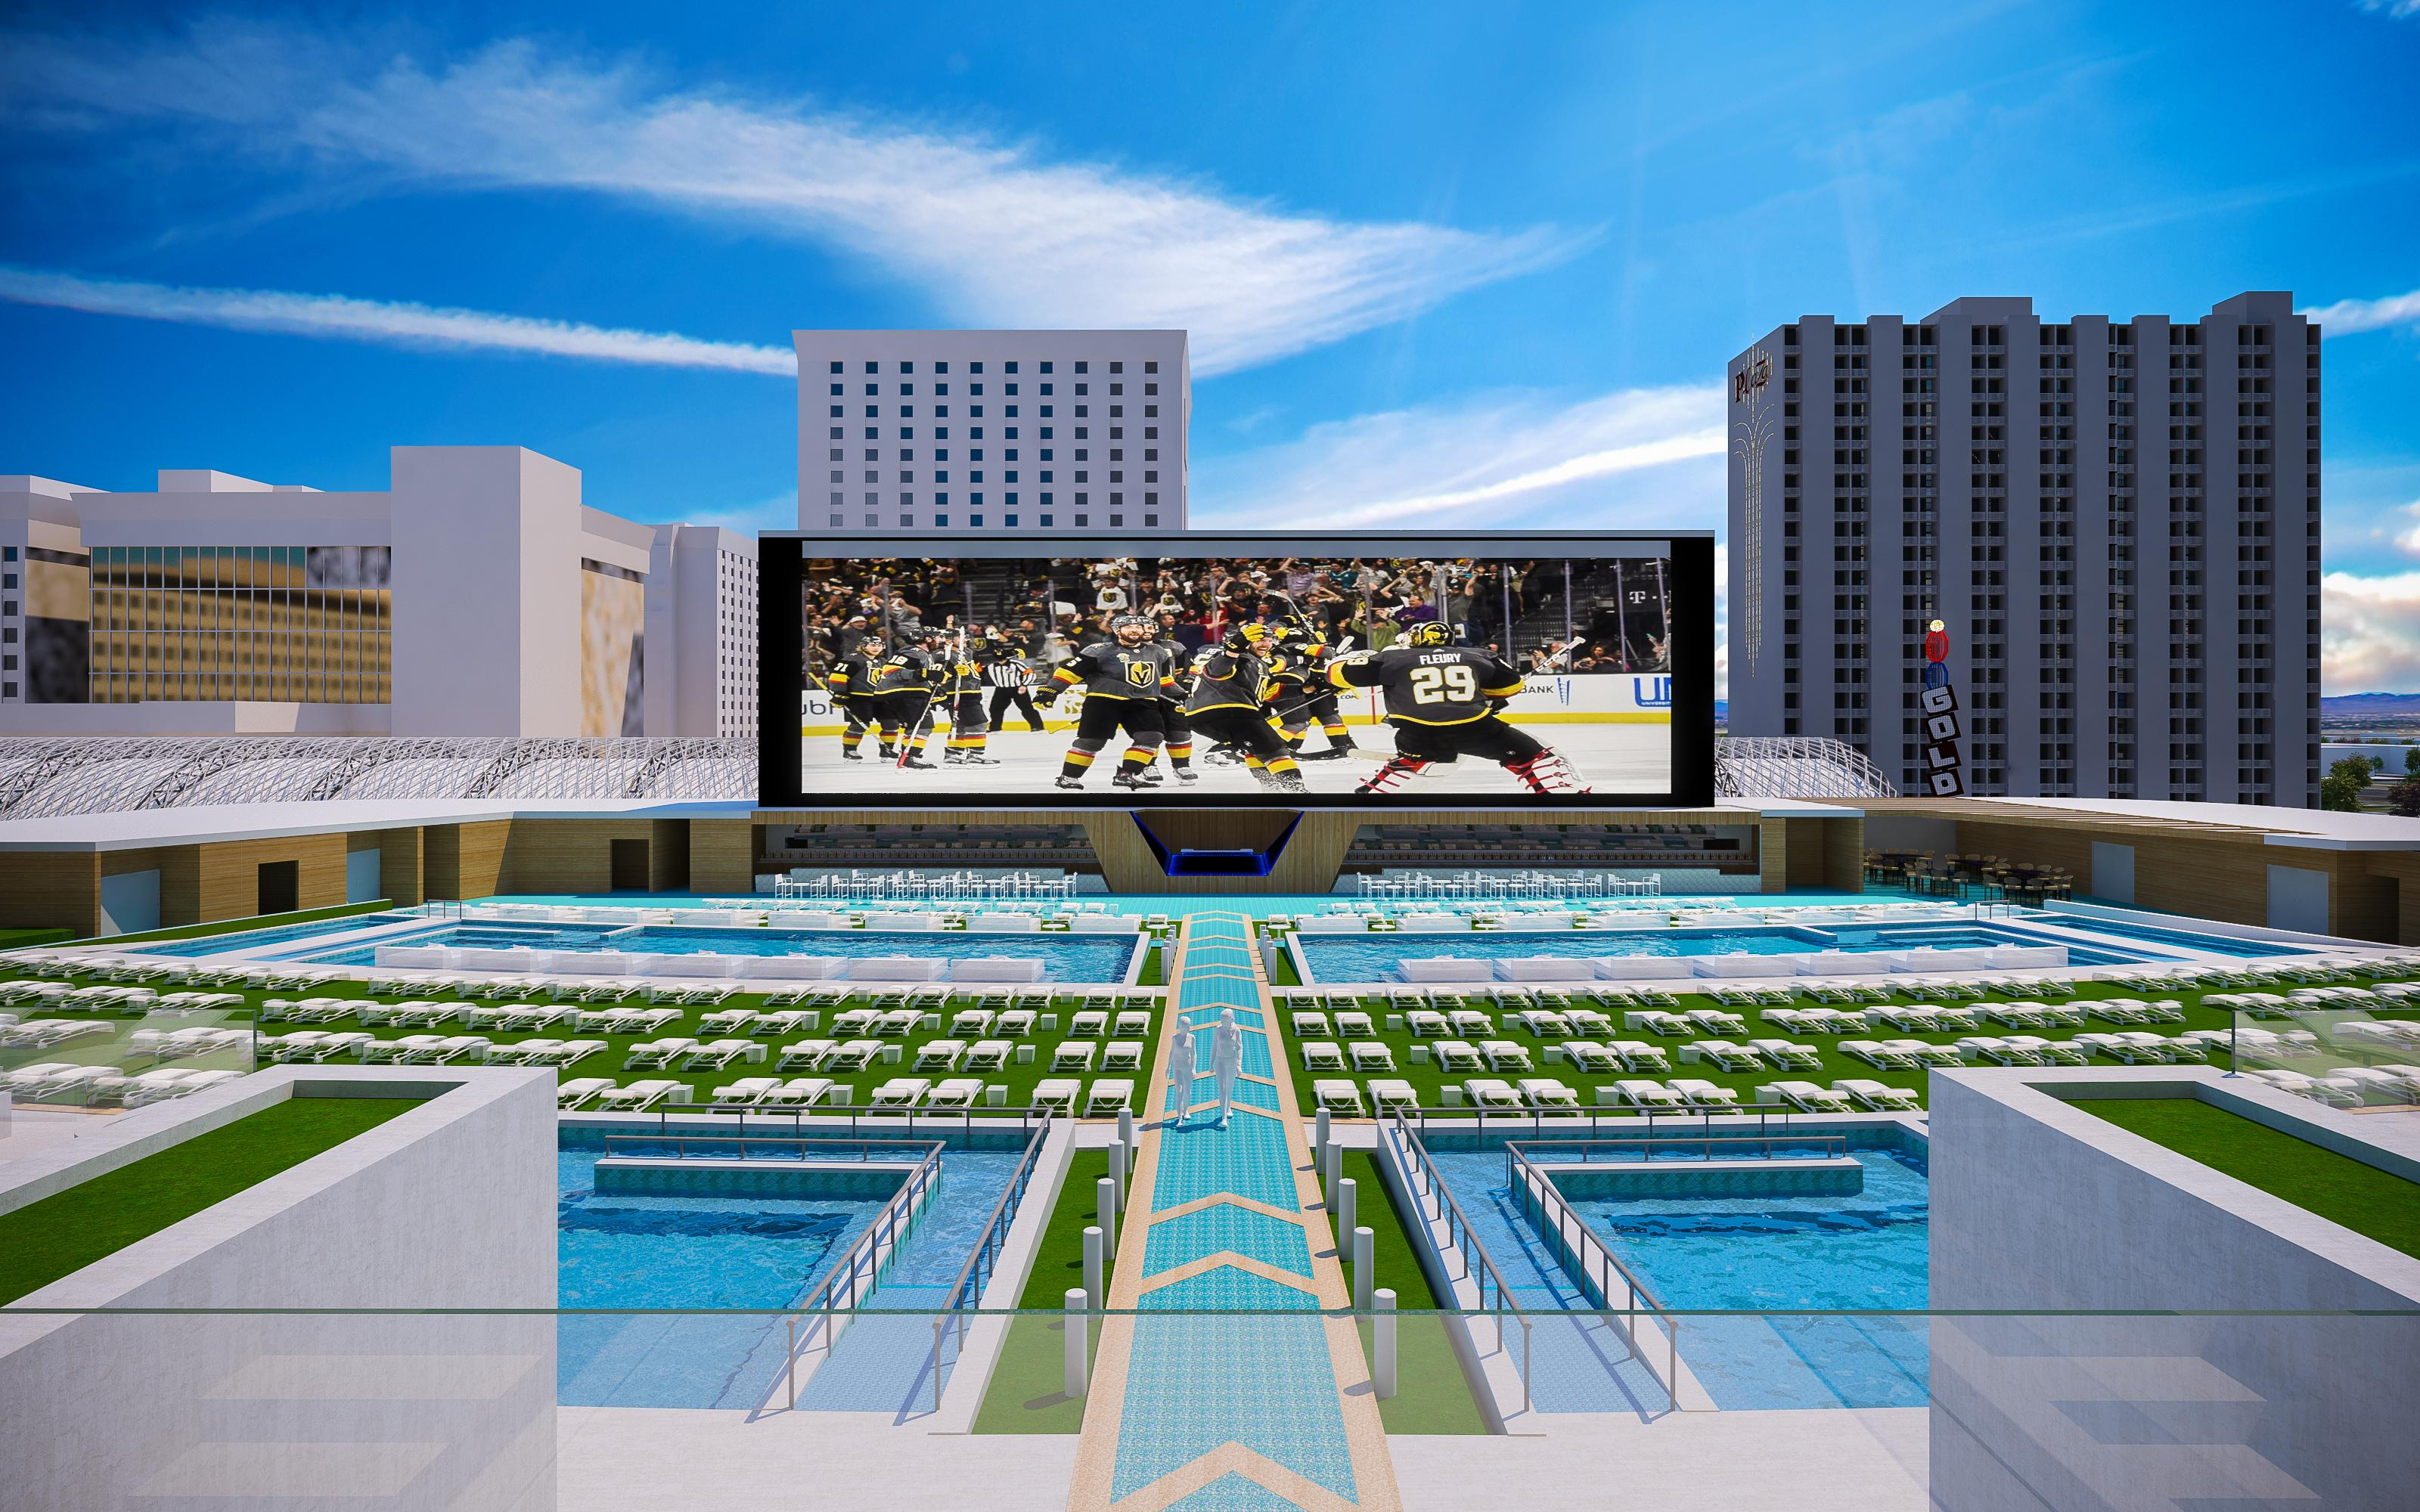 This is a rendering of the pool deck of Derek Stevens' new project for Fremont Street, Circa Resort & Casino, released Thursday, Jan 10, 2019 (Rendering courtesy of Circa)